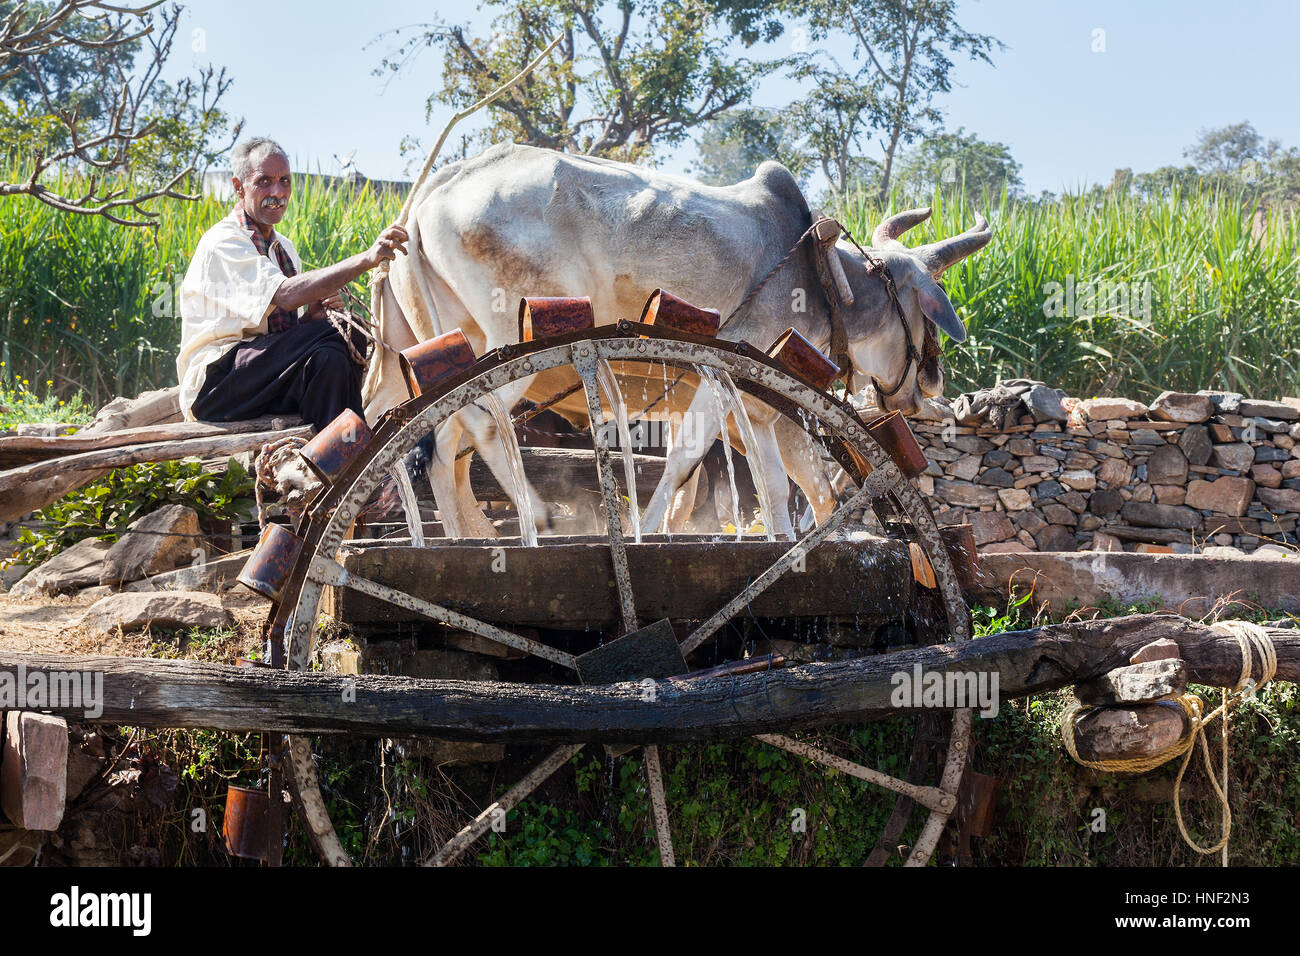 KUMBHALGARH, INDIA - JANUARY 17, 2015: A farmer works a pair of oxen to drive a water wheel in rural Rajasthan. - Stock Image